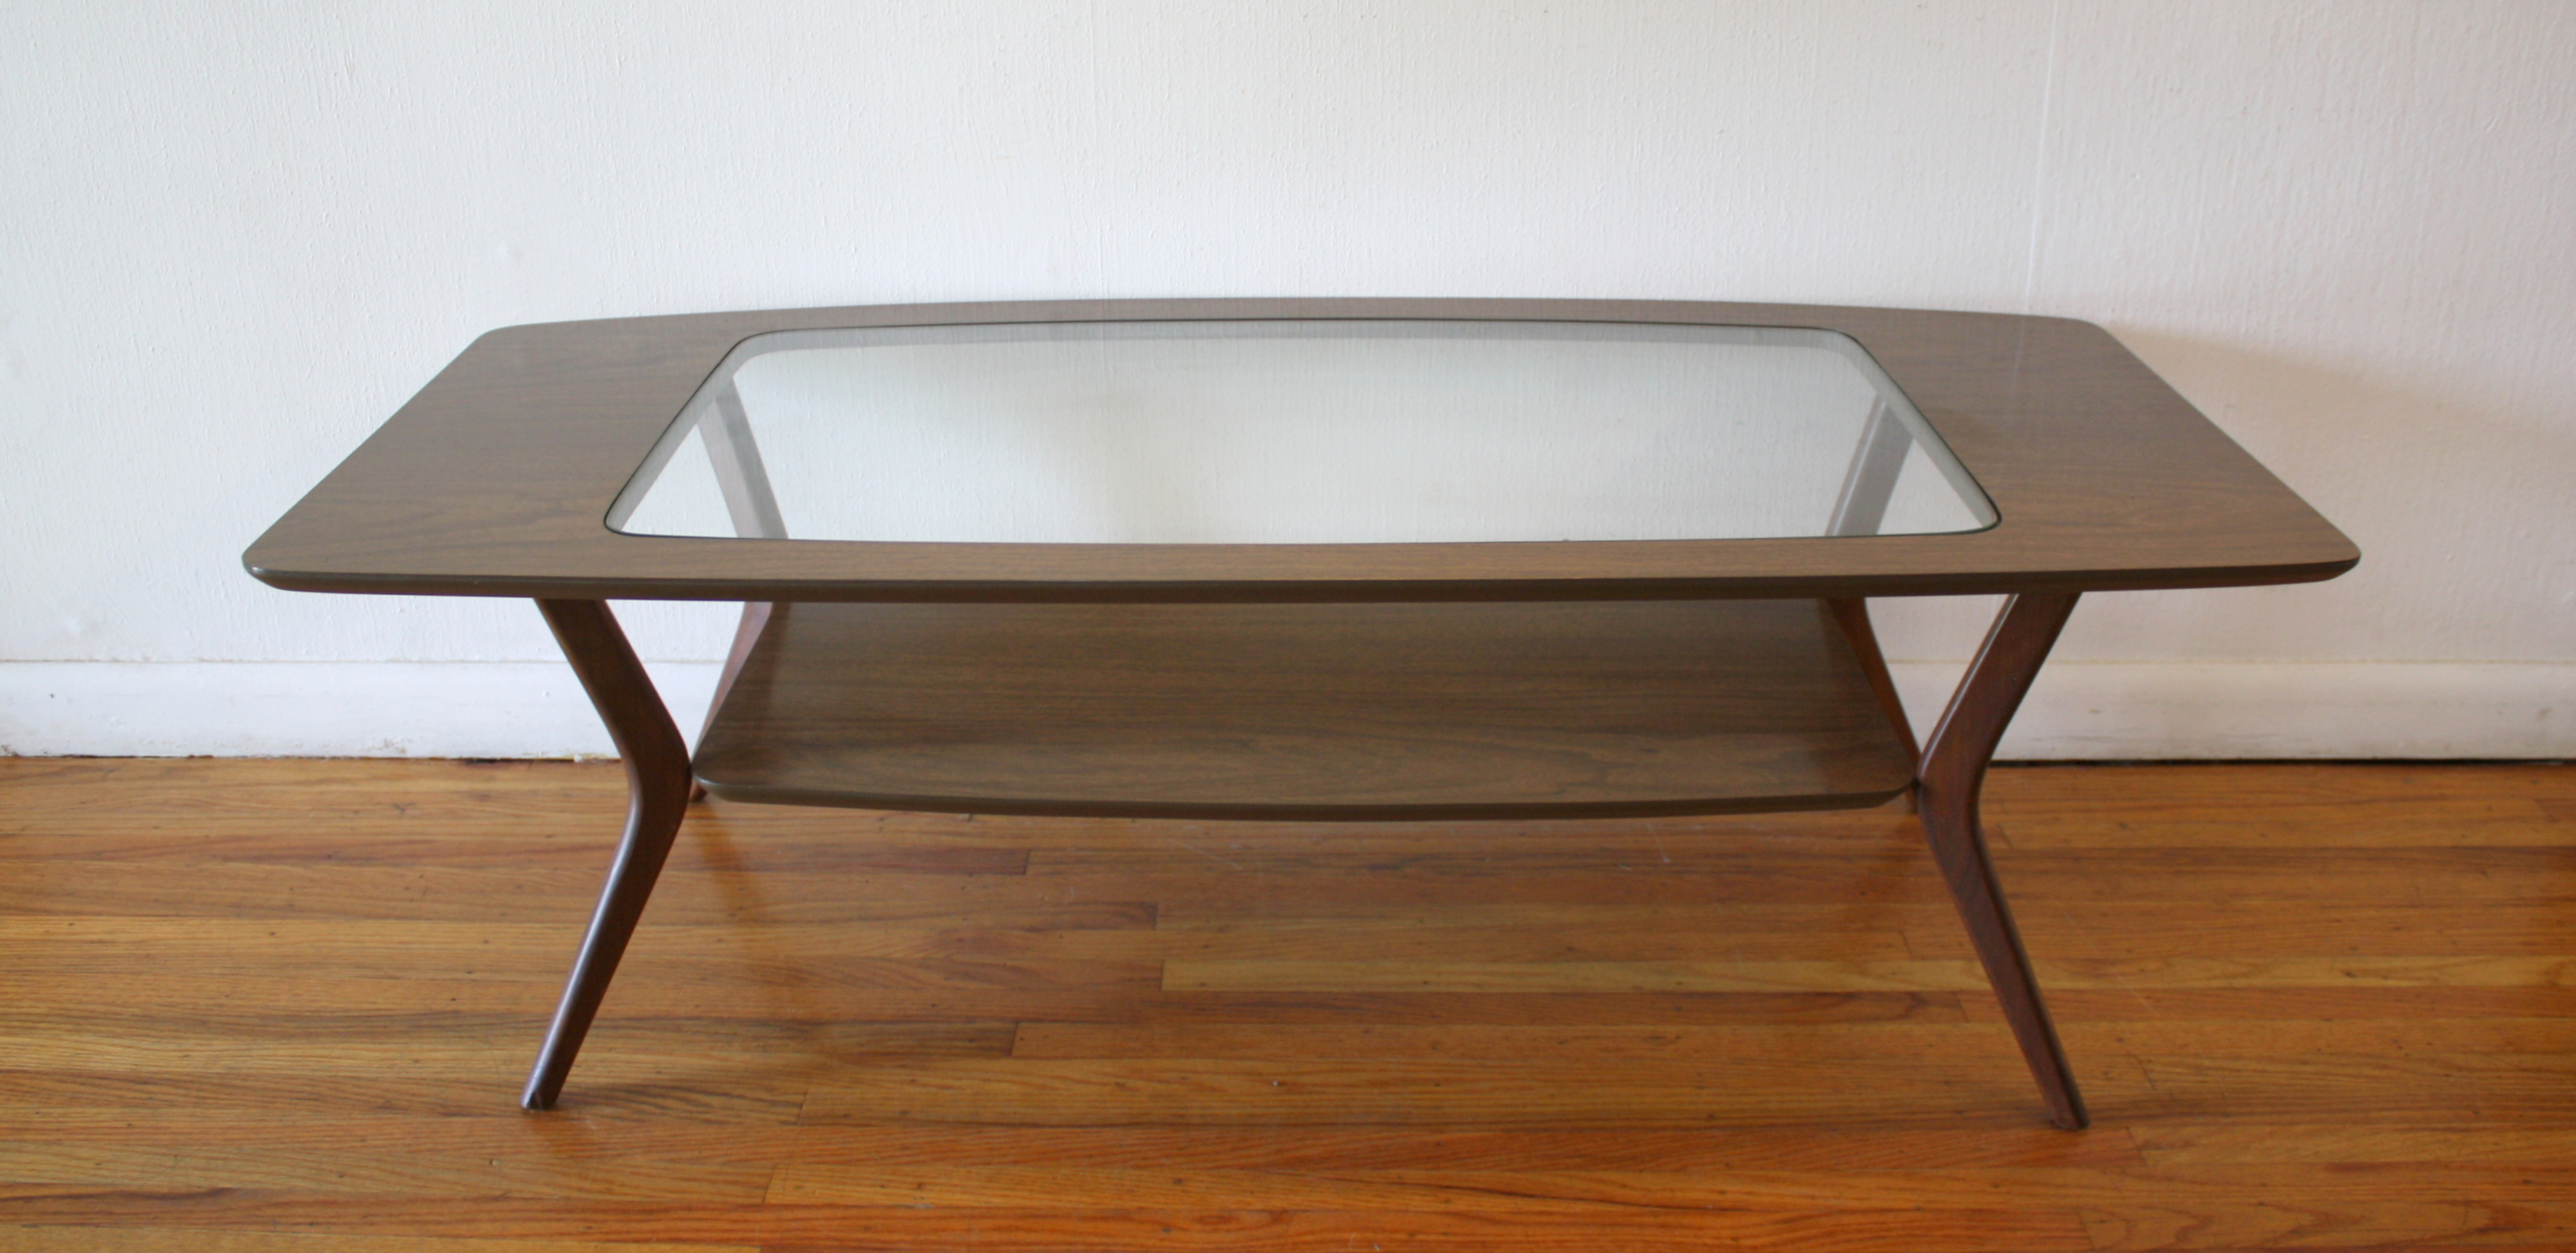 mcm glass insert coffee table 1.JPG